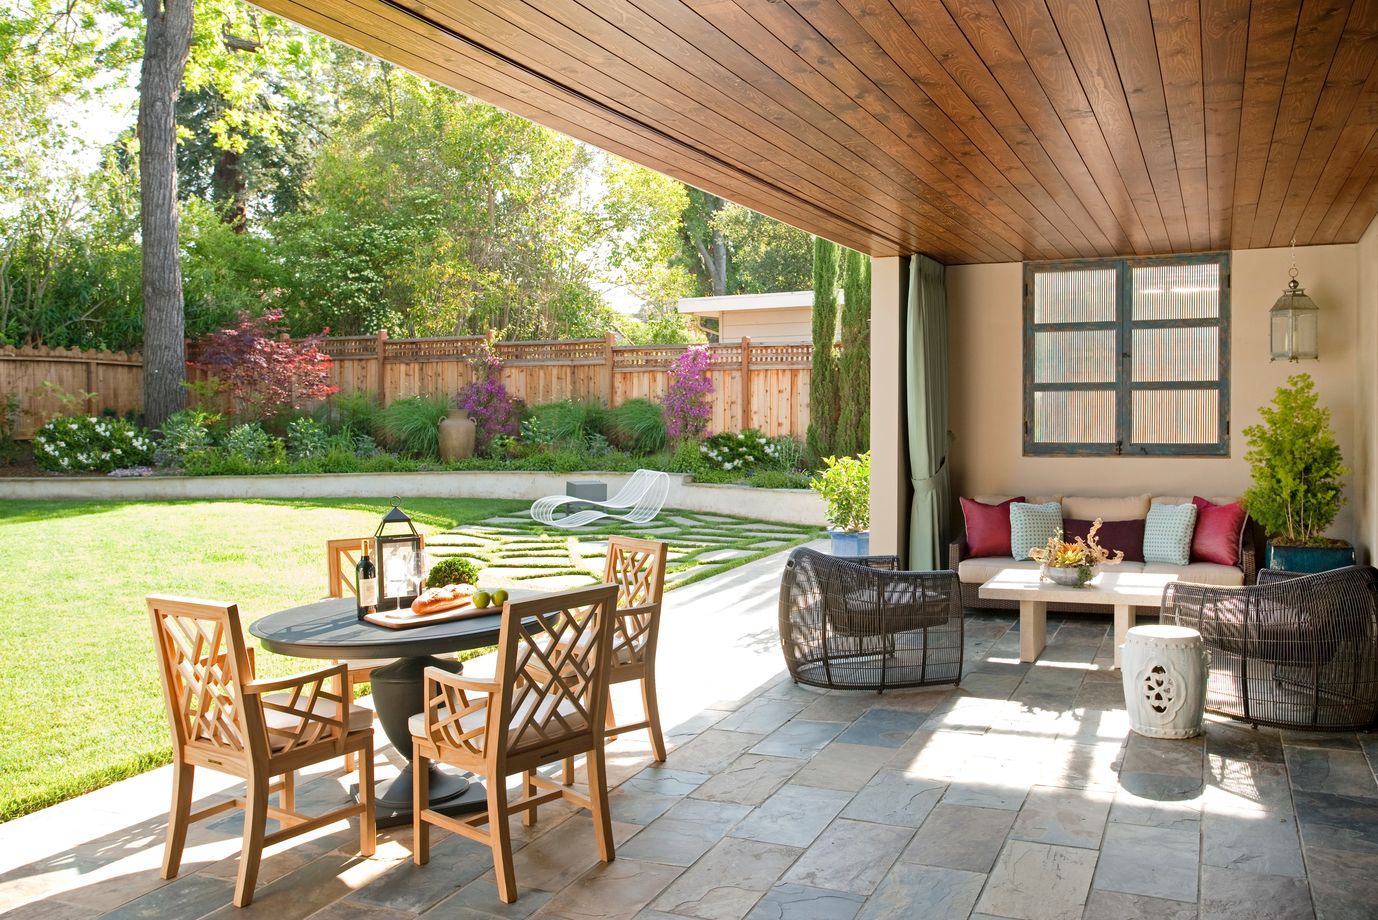 Outdoor living 8 ideas to get the most out of your space for Outdoor living space designs